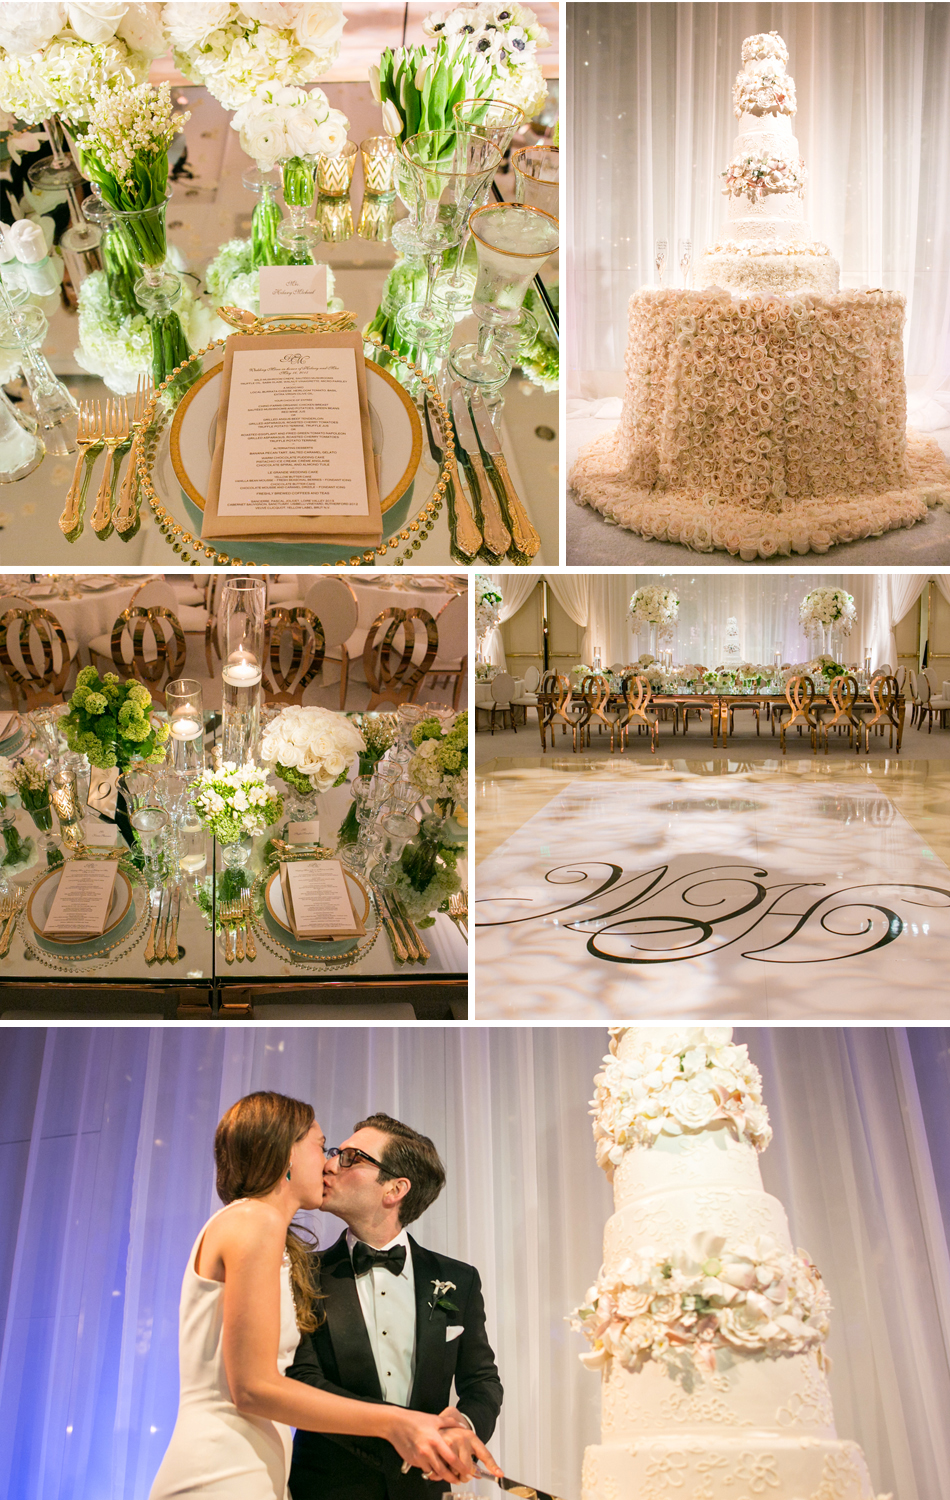 internationaleventcompany.com | International Event Company Los Angeles Wedding Planner and Designer | Weddings at The Four Seasons | Luxury Event Planners in Southern California _ (4).jpg